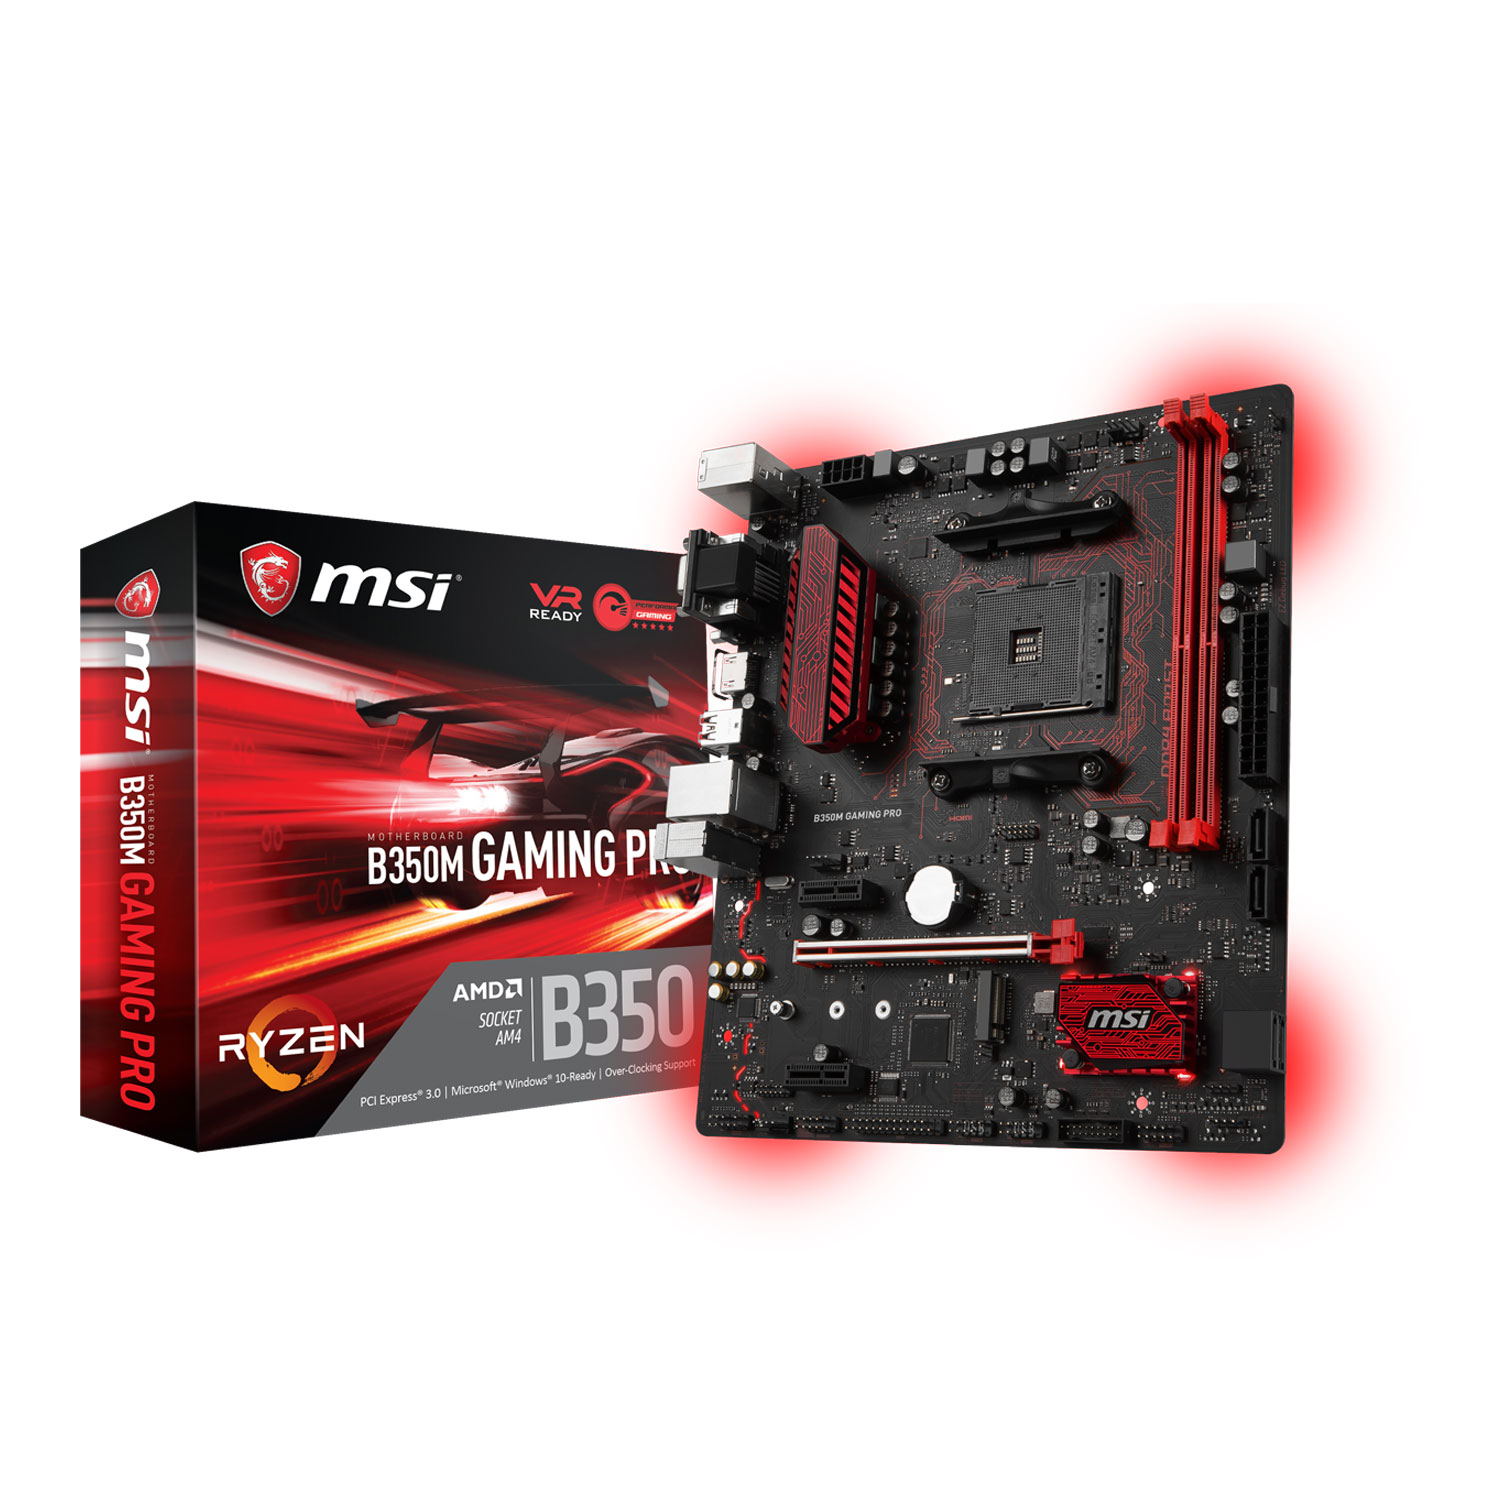 Carte mère MSI B350M Gaming PRO Socket AM4 (AMD B350) mATX, informatique ile de la Réunion 974